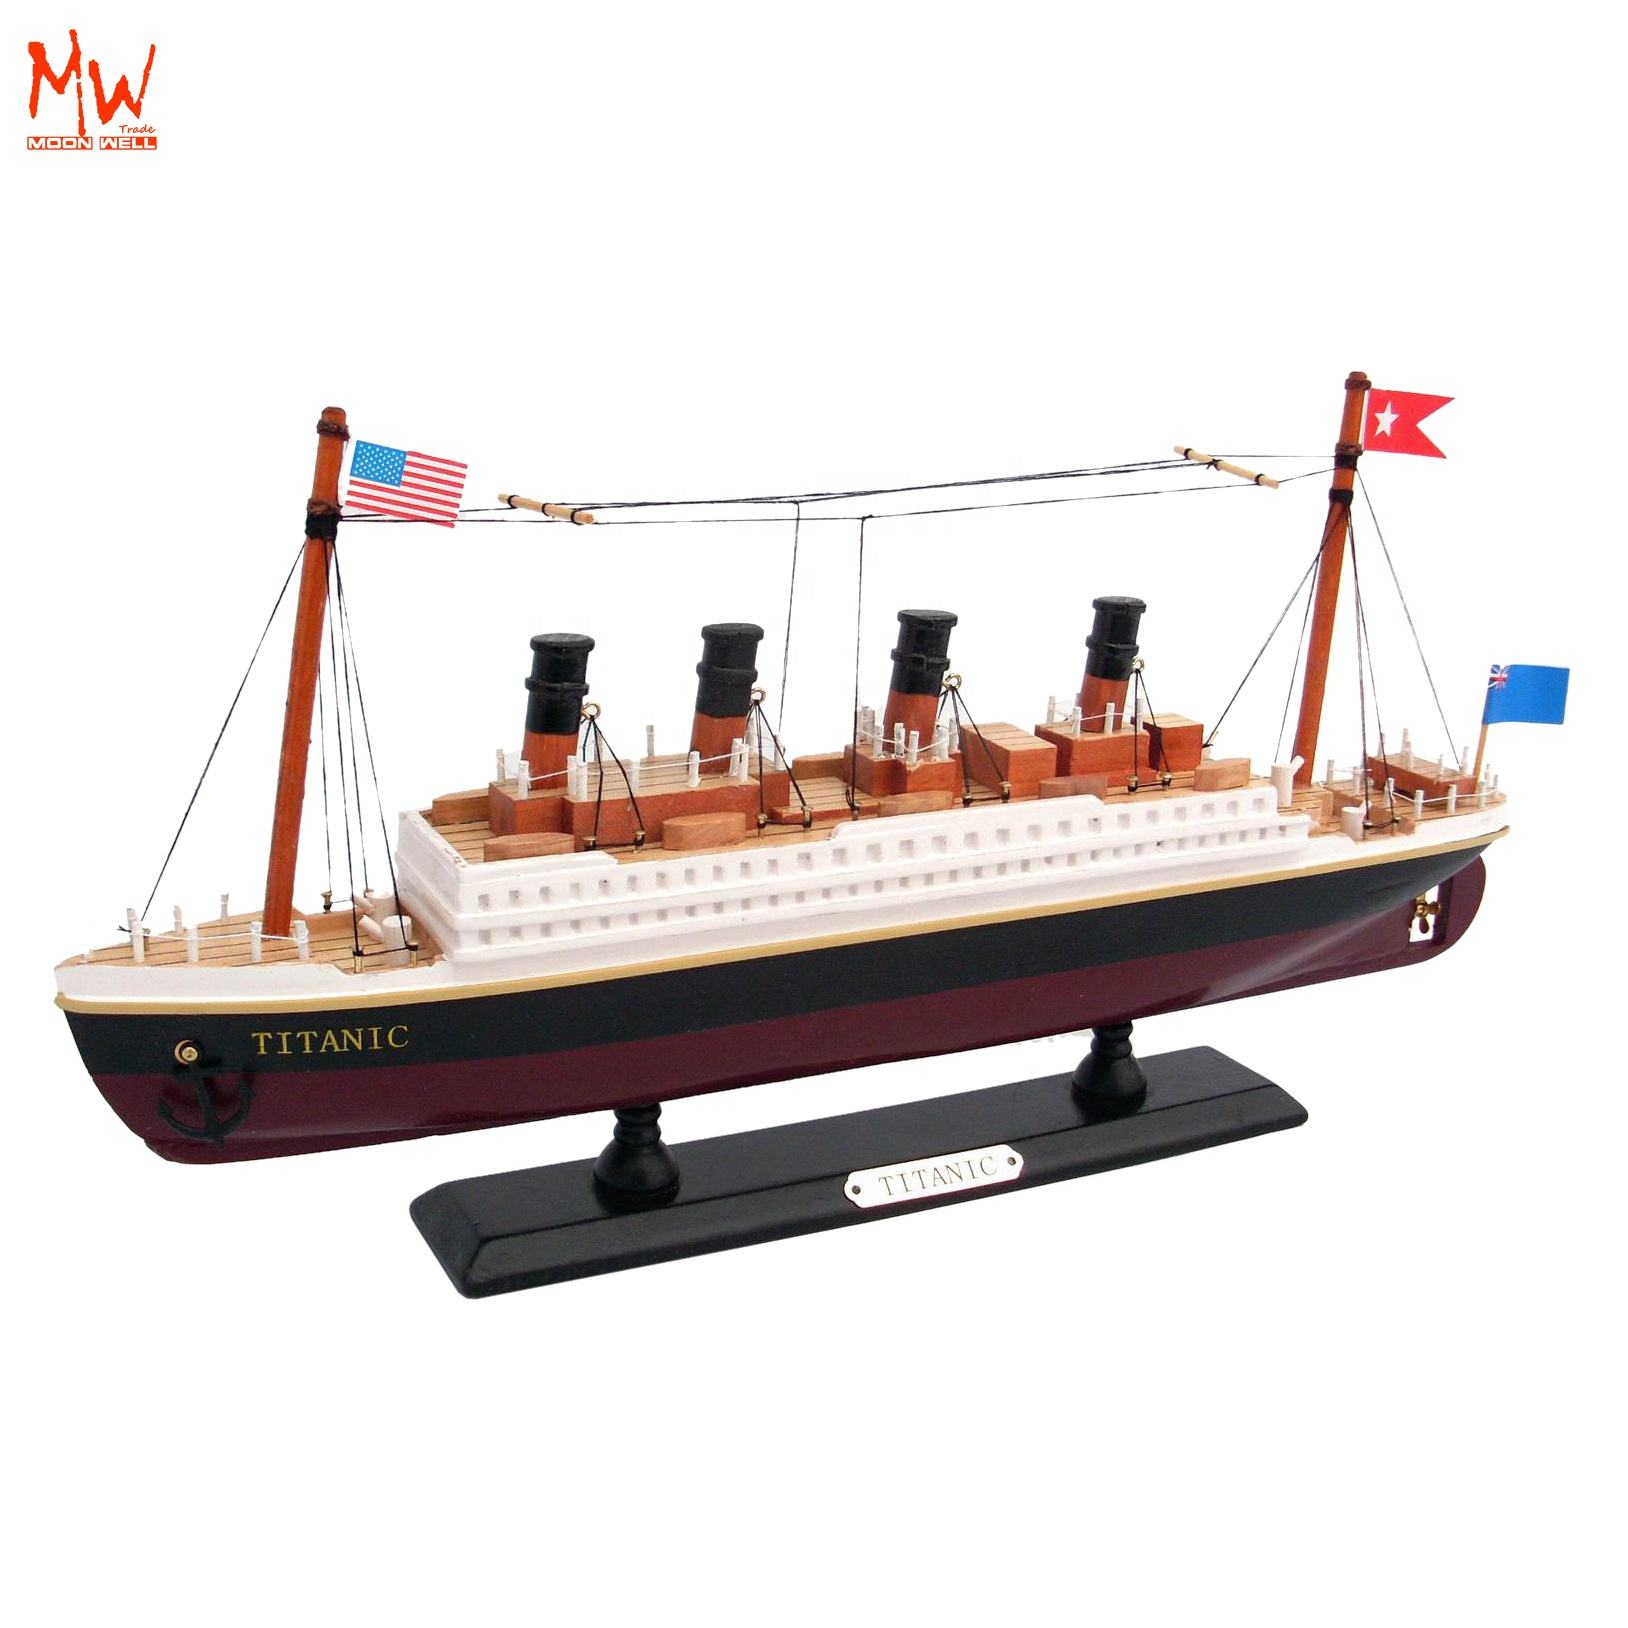 Wooden handcrafted RMS Titanic Cruise Ship model HOME AND OFFICE DECORATION 35cm 14'' Hampton Nautical RMS Titanic Cruise Ship